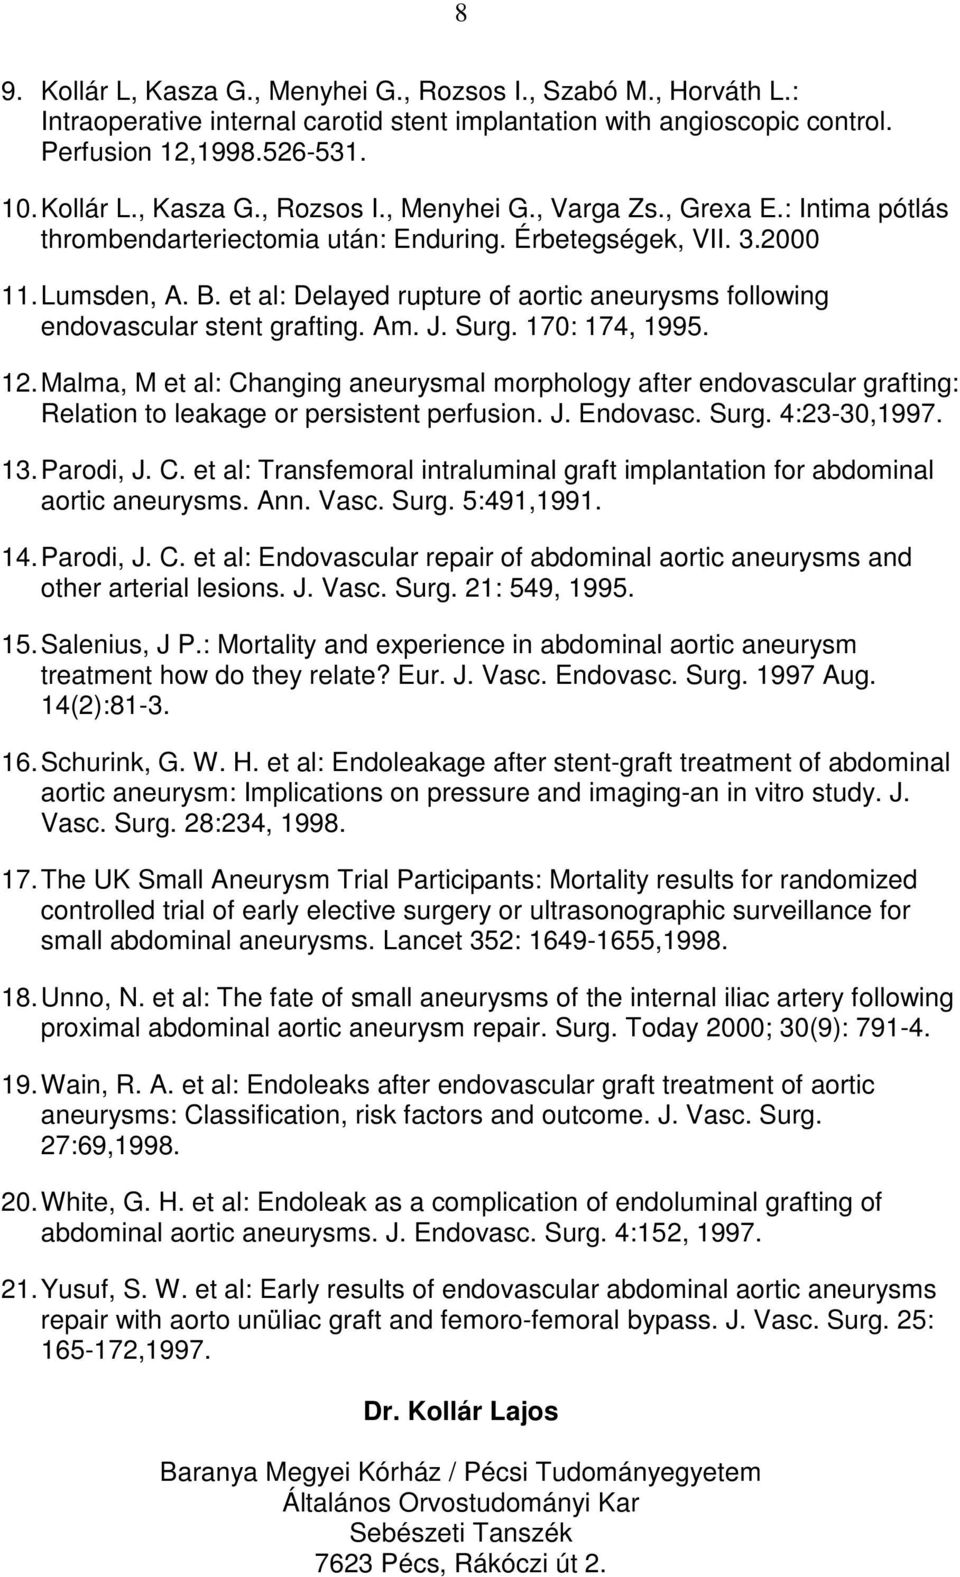 Surg. 170: 174, 1995. 12. Malma, M et al: Changing aneurysmal morphology after endovascular grafting: Relation to leakage or persistent perfusion. J. Endovasc. Surg. 4:23-30,1997. 13. Parodi, J. C. et al: Transfemoral intraluminal graft implantation for abdominal aortic aneurysms.